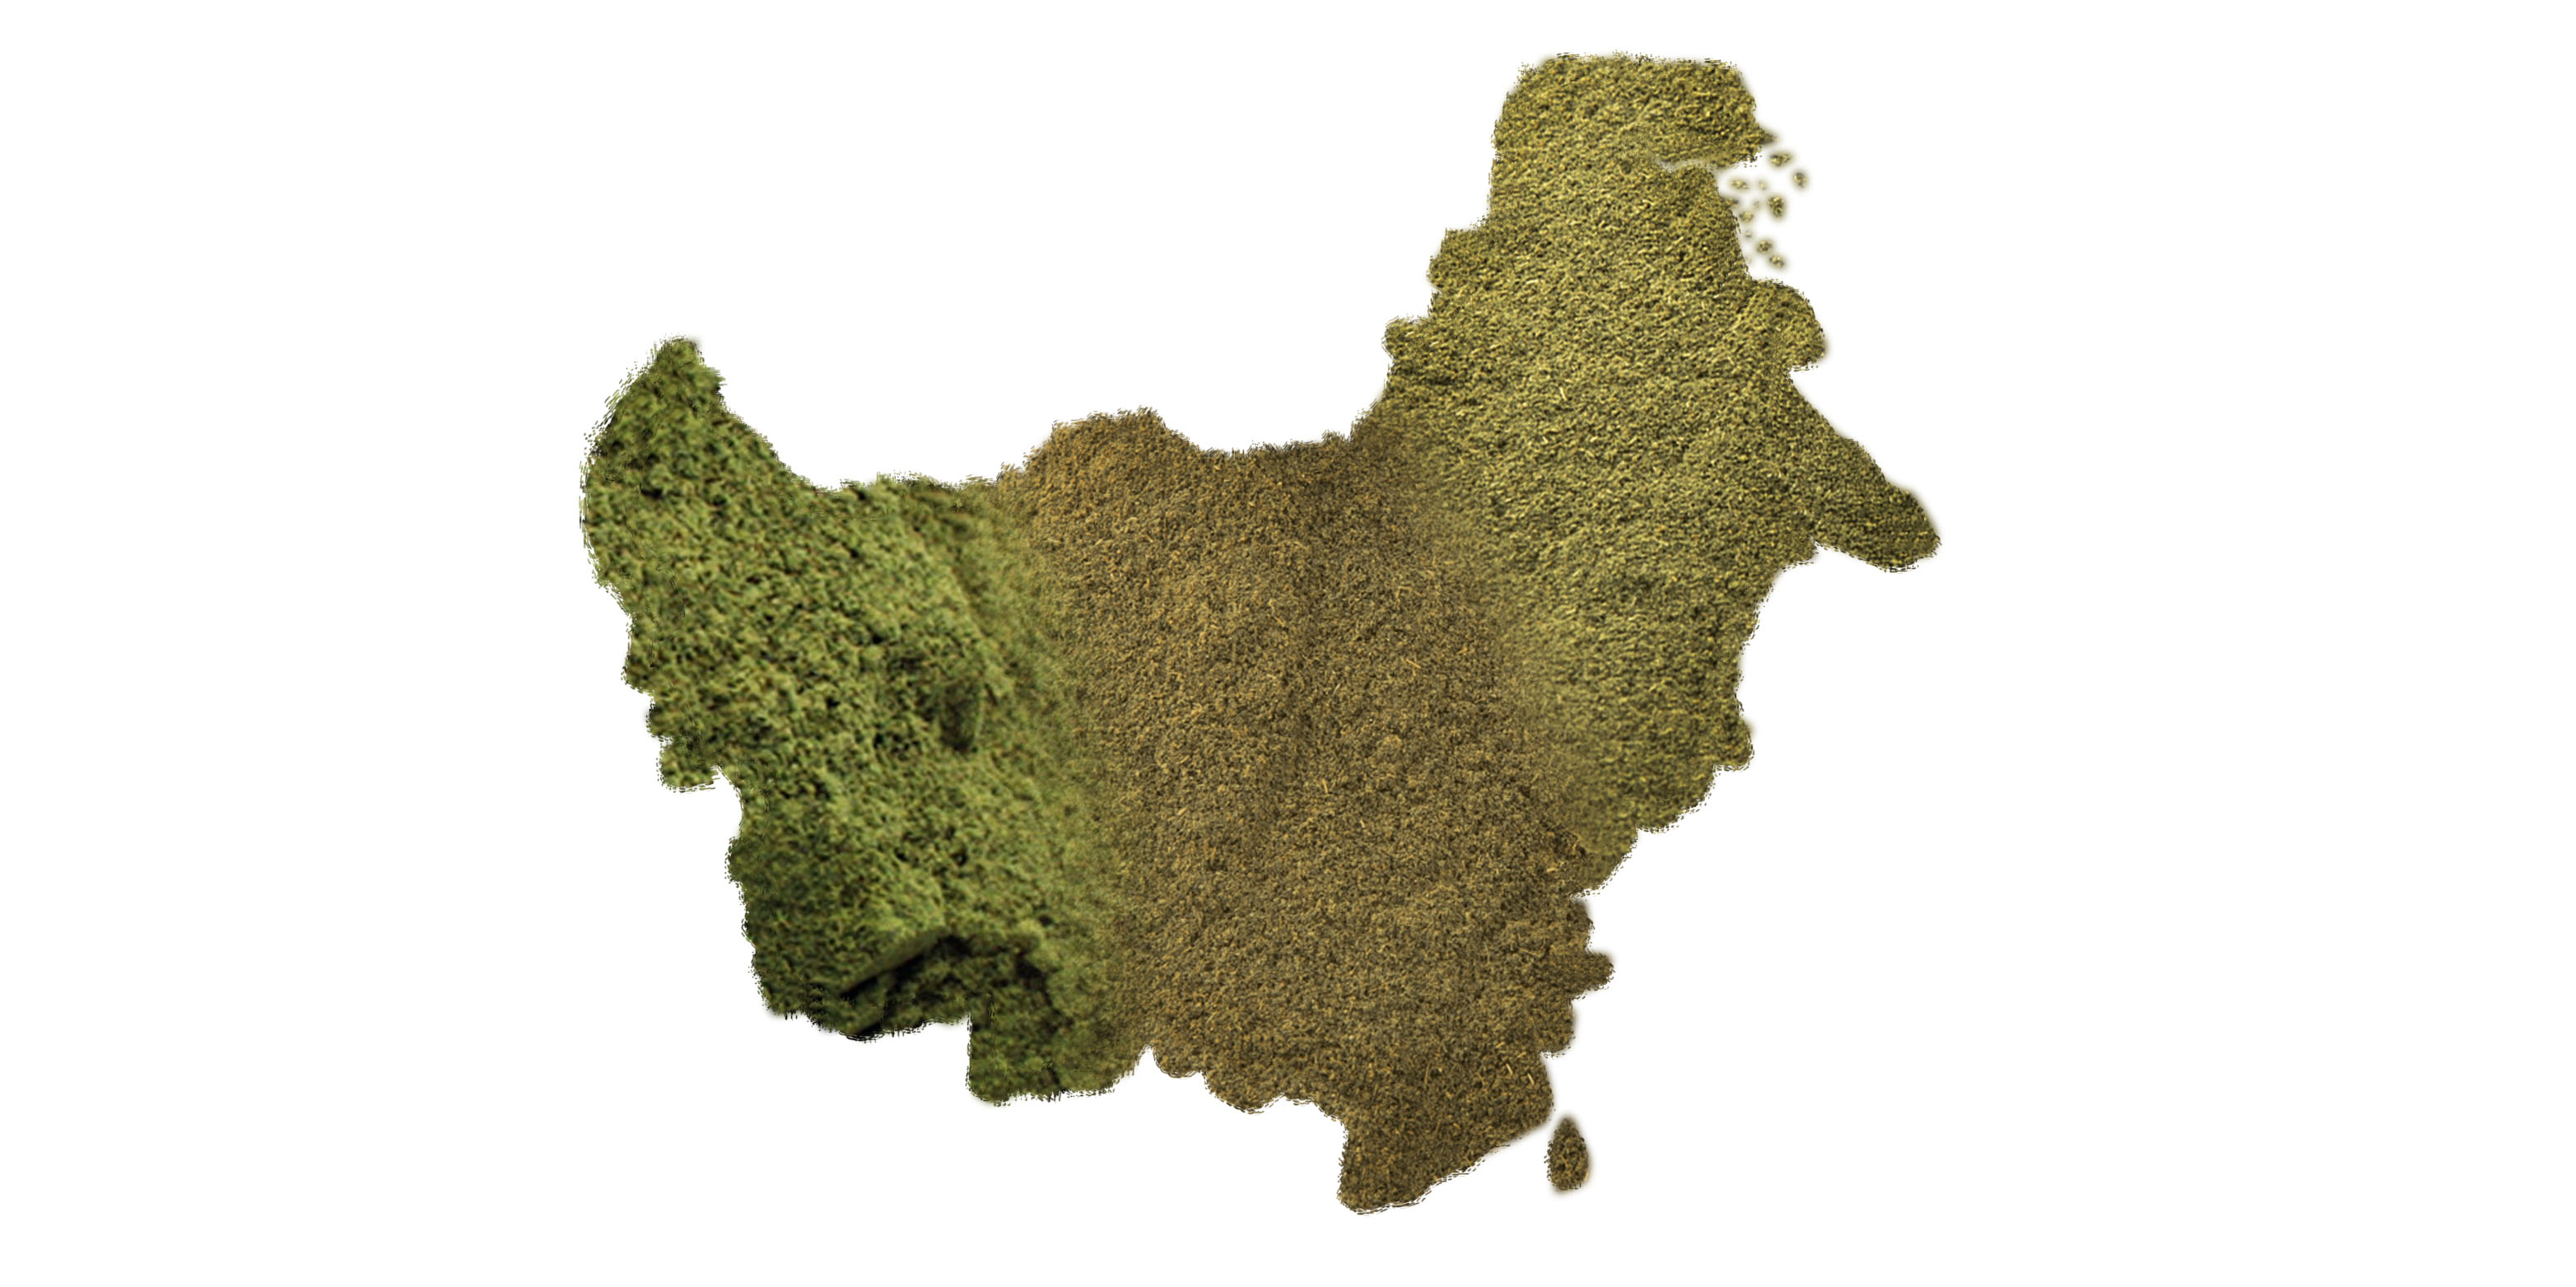 West Borneo Kratom